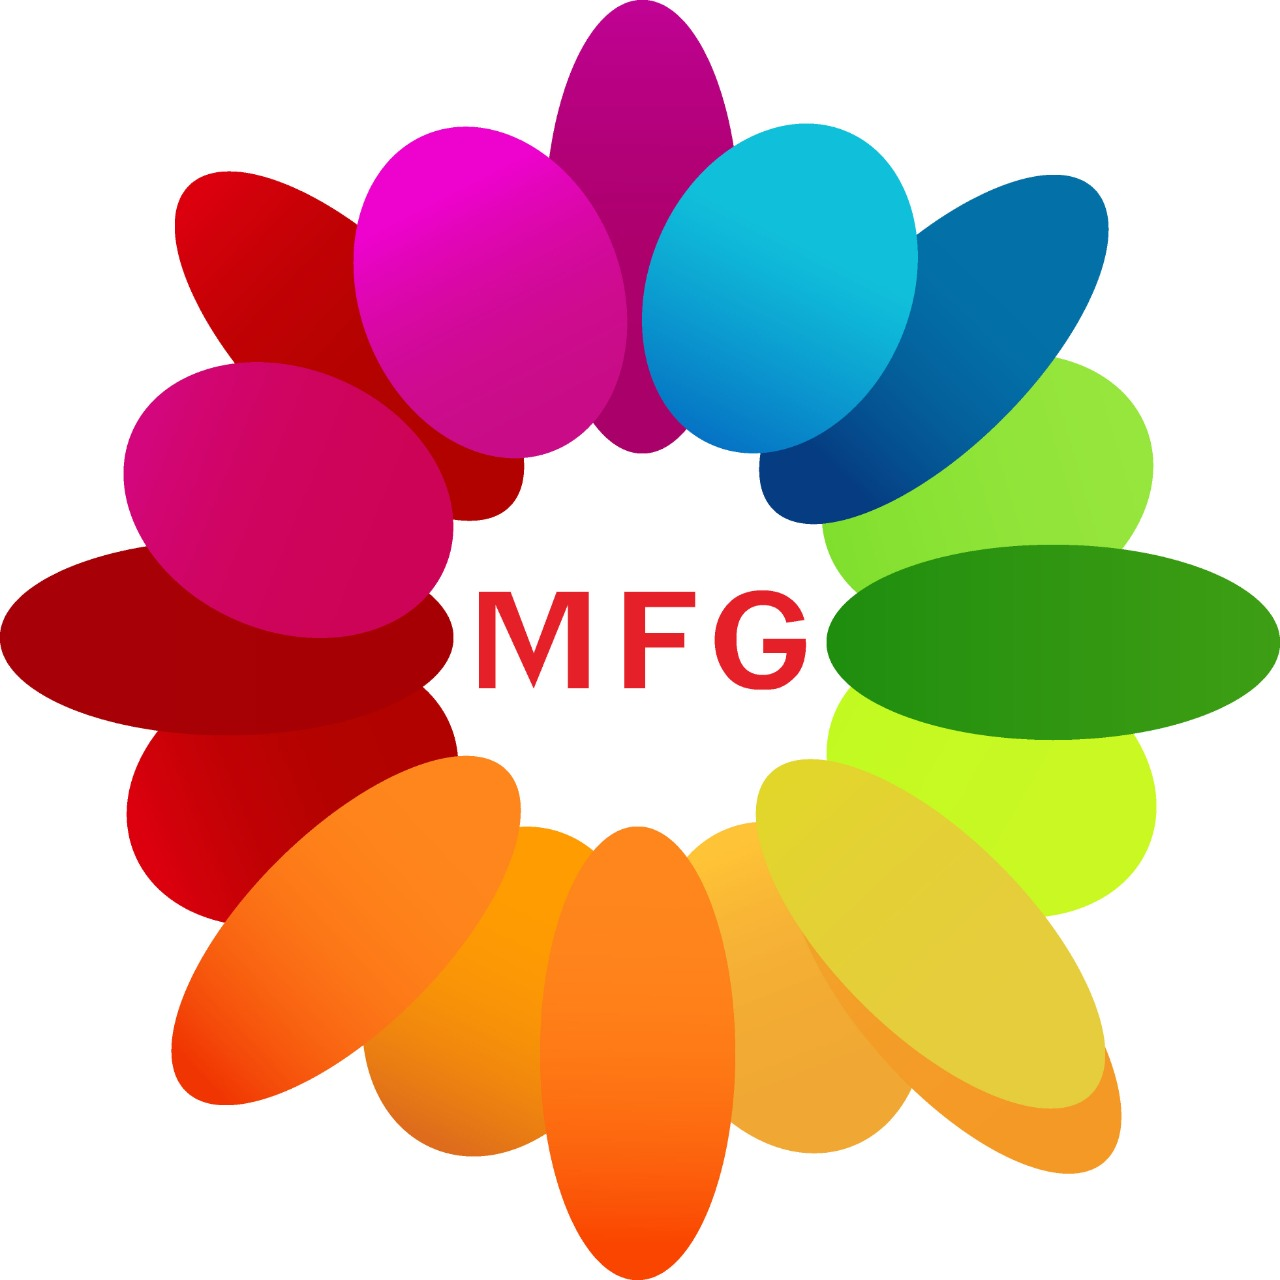 Bunch of 15 carnation with fruit basket